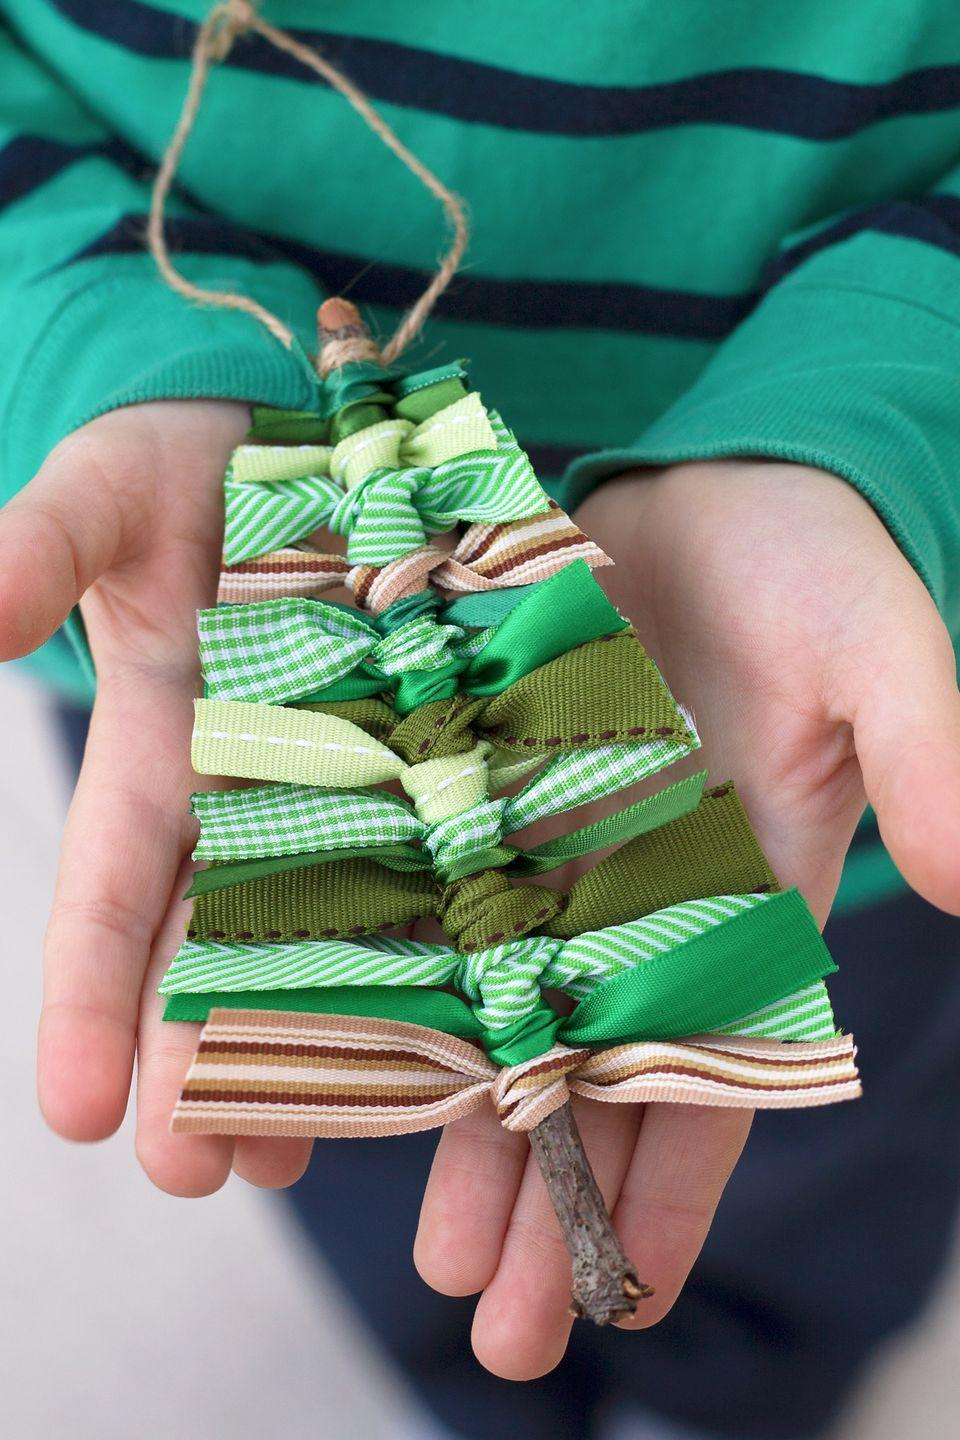 """<p>Pair leftover ribbon or fabric scraps with some twine and a twig sourced from your yard for this easy Christmas ornament. </p><p><strong>Get the tutorial at <a href=""""https://www.firefliesandmudpies.com/scrap-ribbon-tree-ornaments/"""" rel=""""nofollow noopener"""" target=""""_blank"""" data-ylk=""""slk:Fireflies and Mud Pies"""" class=""""link rapid-noclick-resp"""">Fireflies and Mud Pies</a>.</strong></p><p><a class=""""link rapid-noclick-resp"""" href=""""https://www.amazon.com/Grosgrain-Wrapping-Accessories-Crafting-GG-Green/dp/B00798T3O0/?tag=syn-yahoo-20&ascsubtag=%5Bartid%7C10050.g.1070%5Bsrc%7Cyahoo-us"""" rel=""""nofollow noopener"""" target=""""_blank"""" data-ylk=""""slk:SHOP GREEN RIBBON SET"""">SHOP GREEN RIBBON SET</a></p>"""